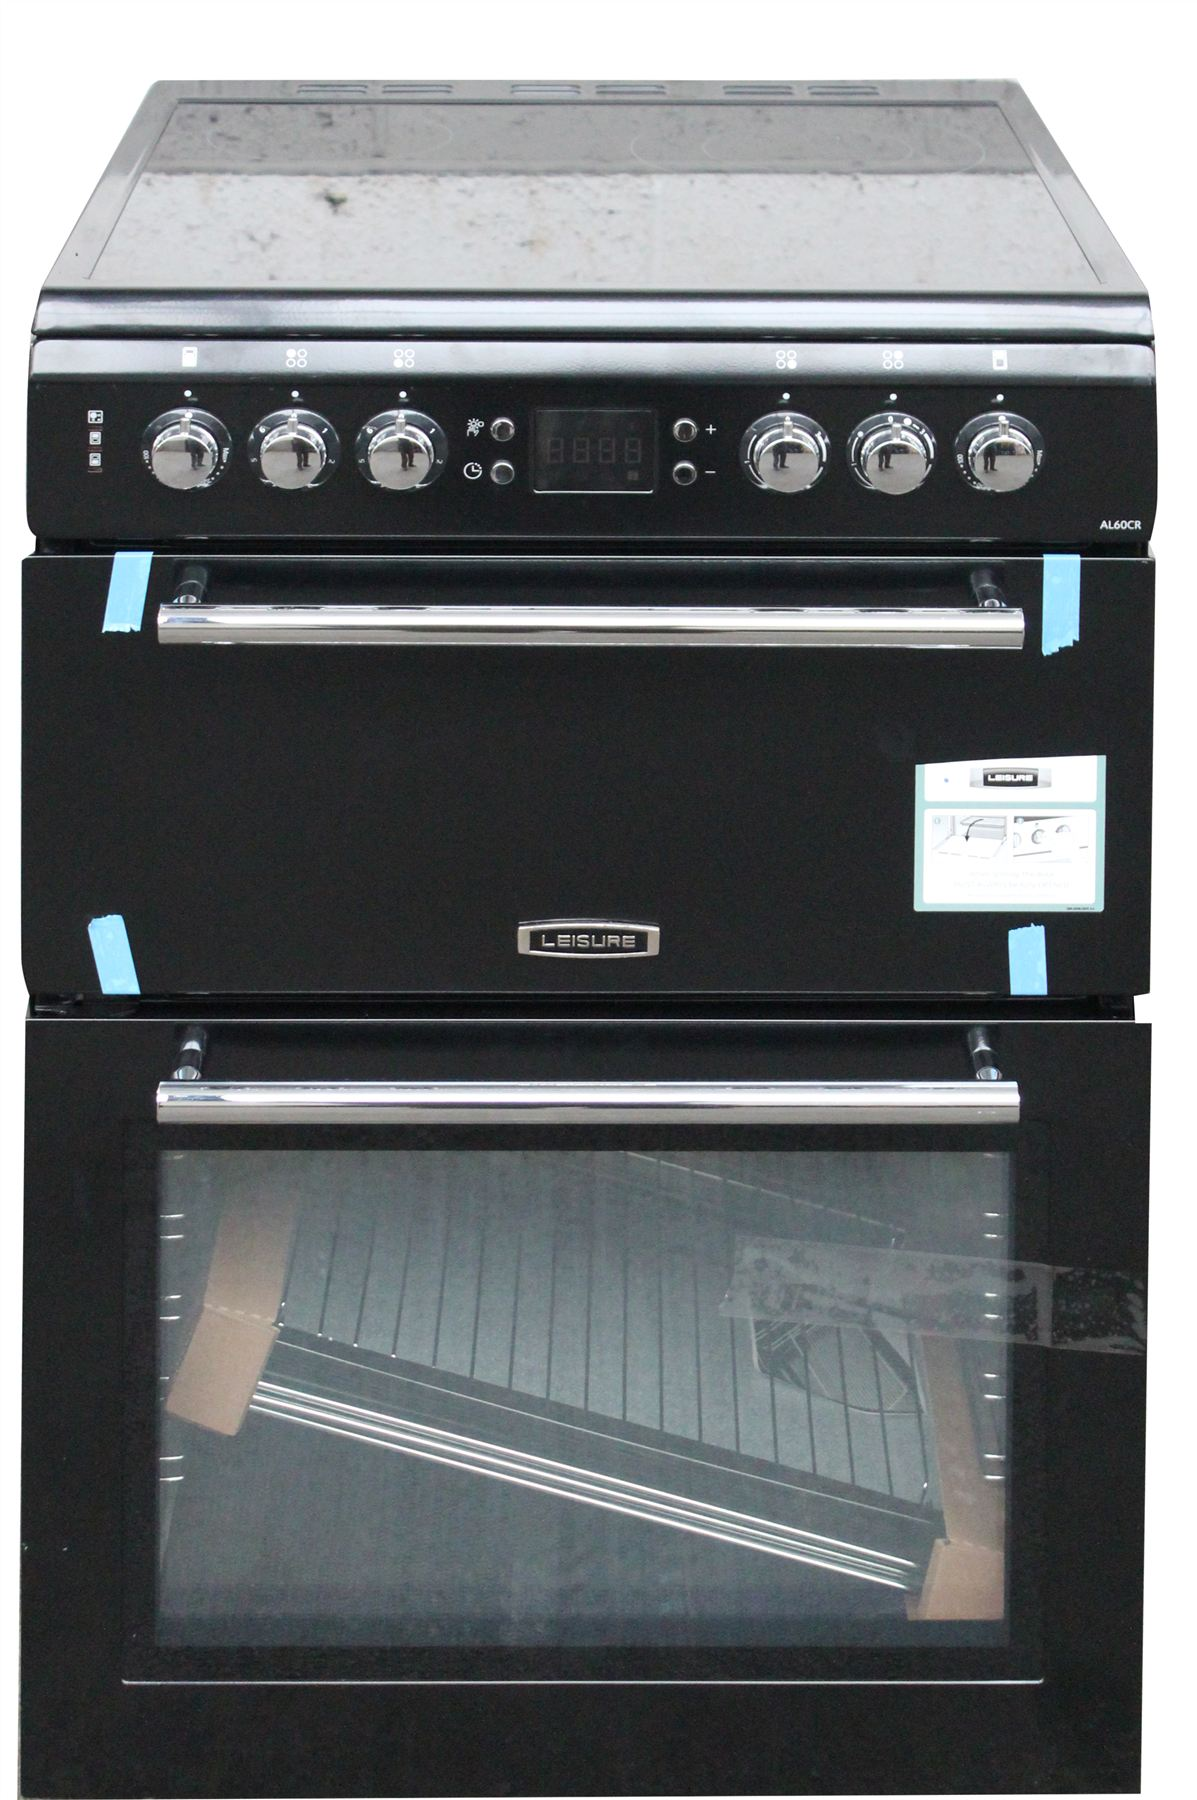 Leisure Electric Cooker 60cm Al60crk Black Double Oven